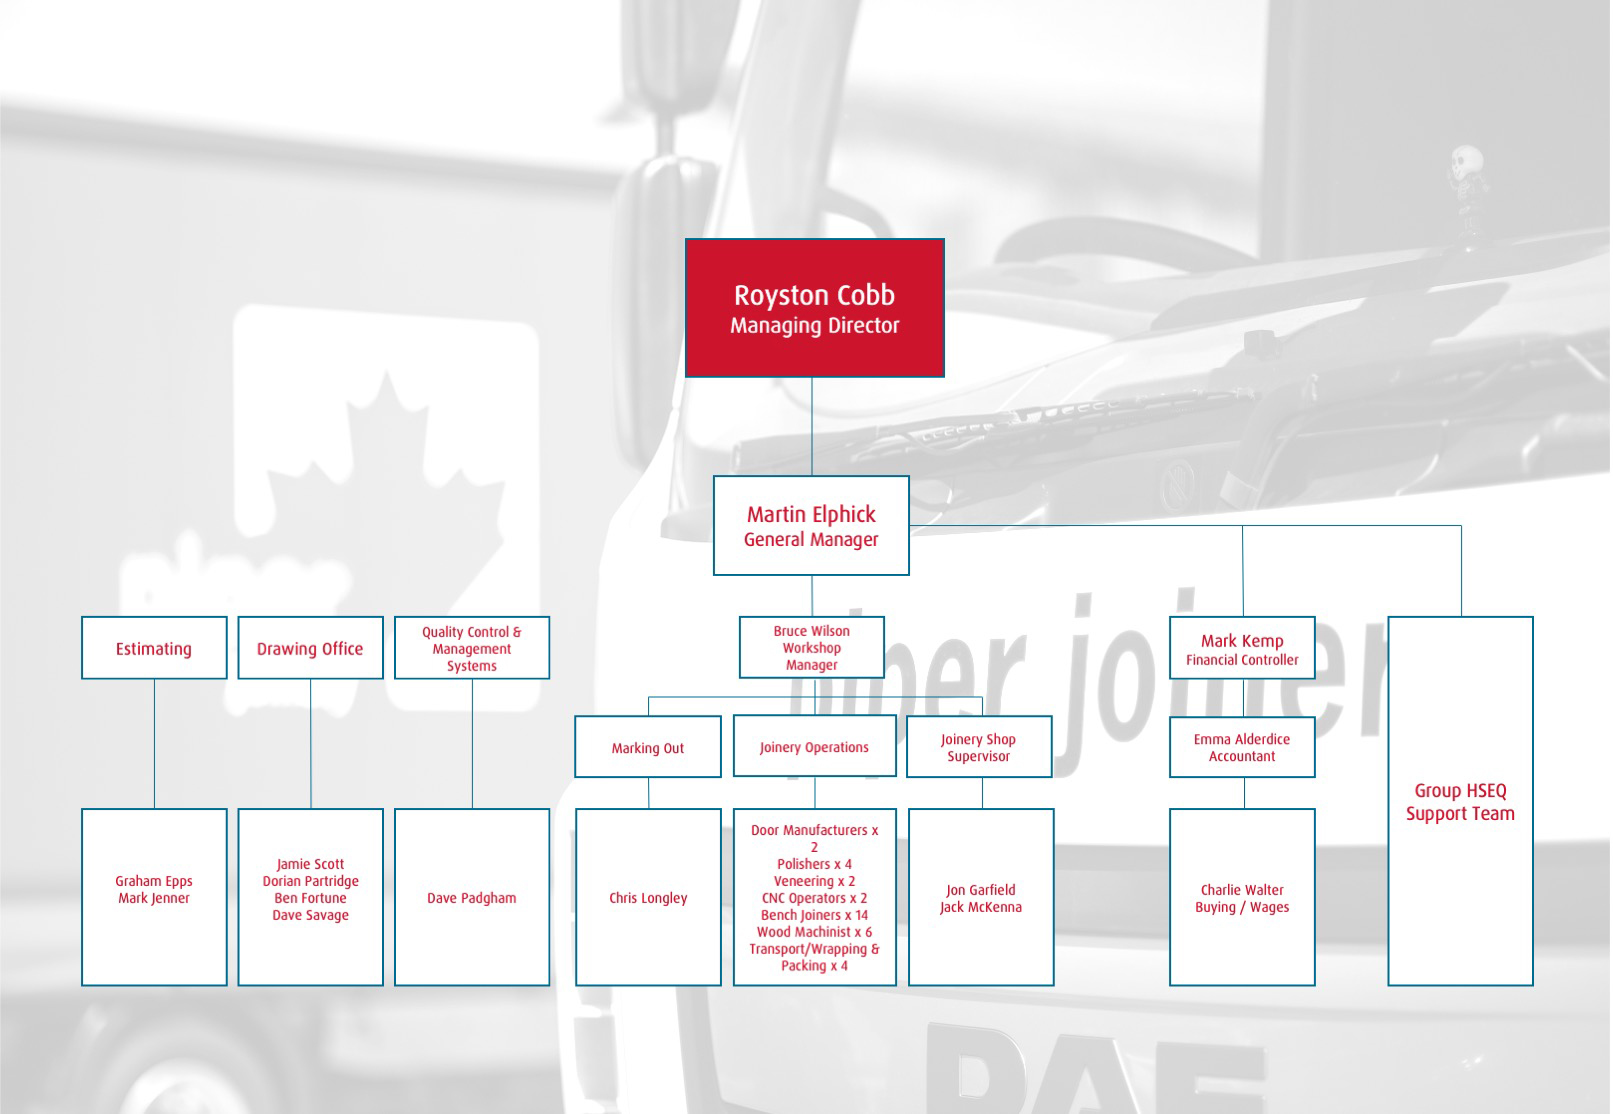 Piper Joinery Management Structure 2019